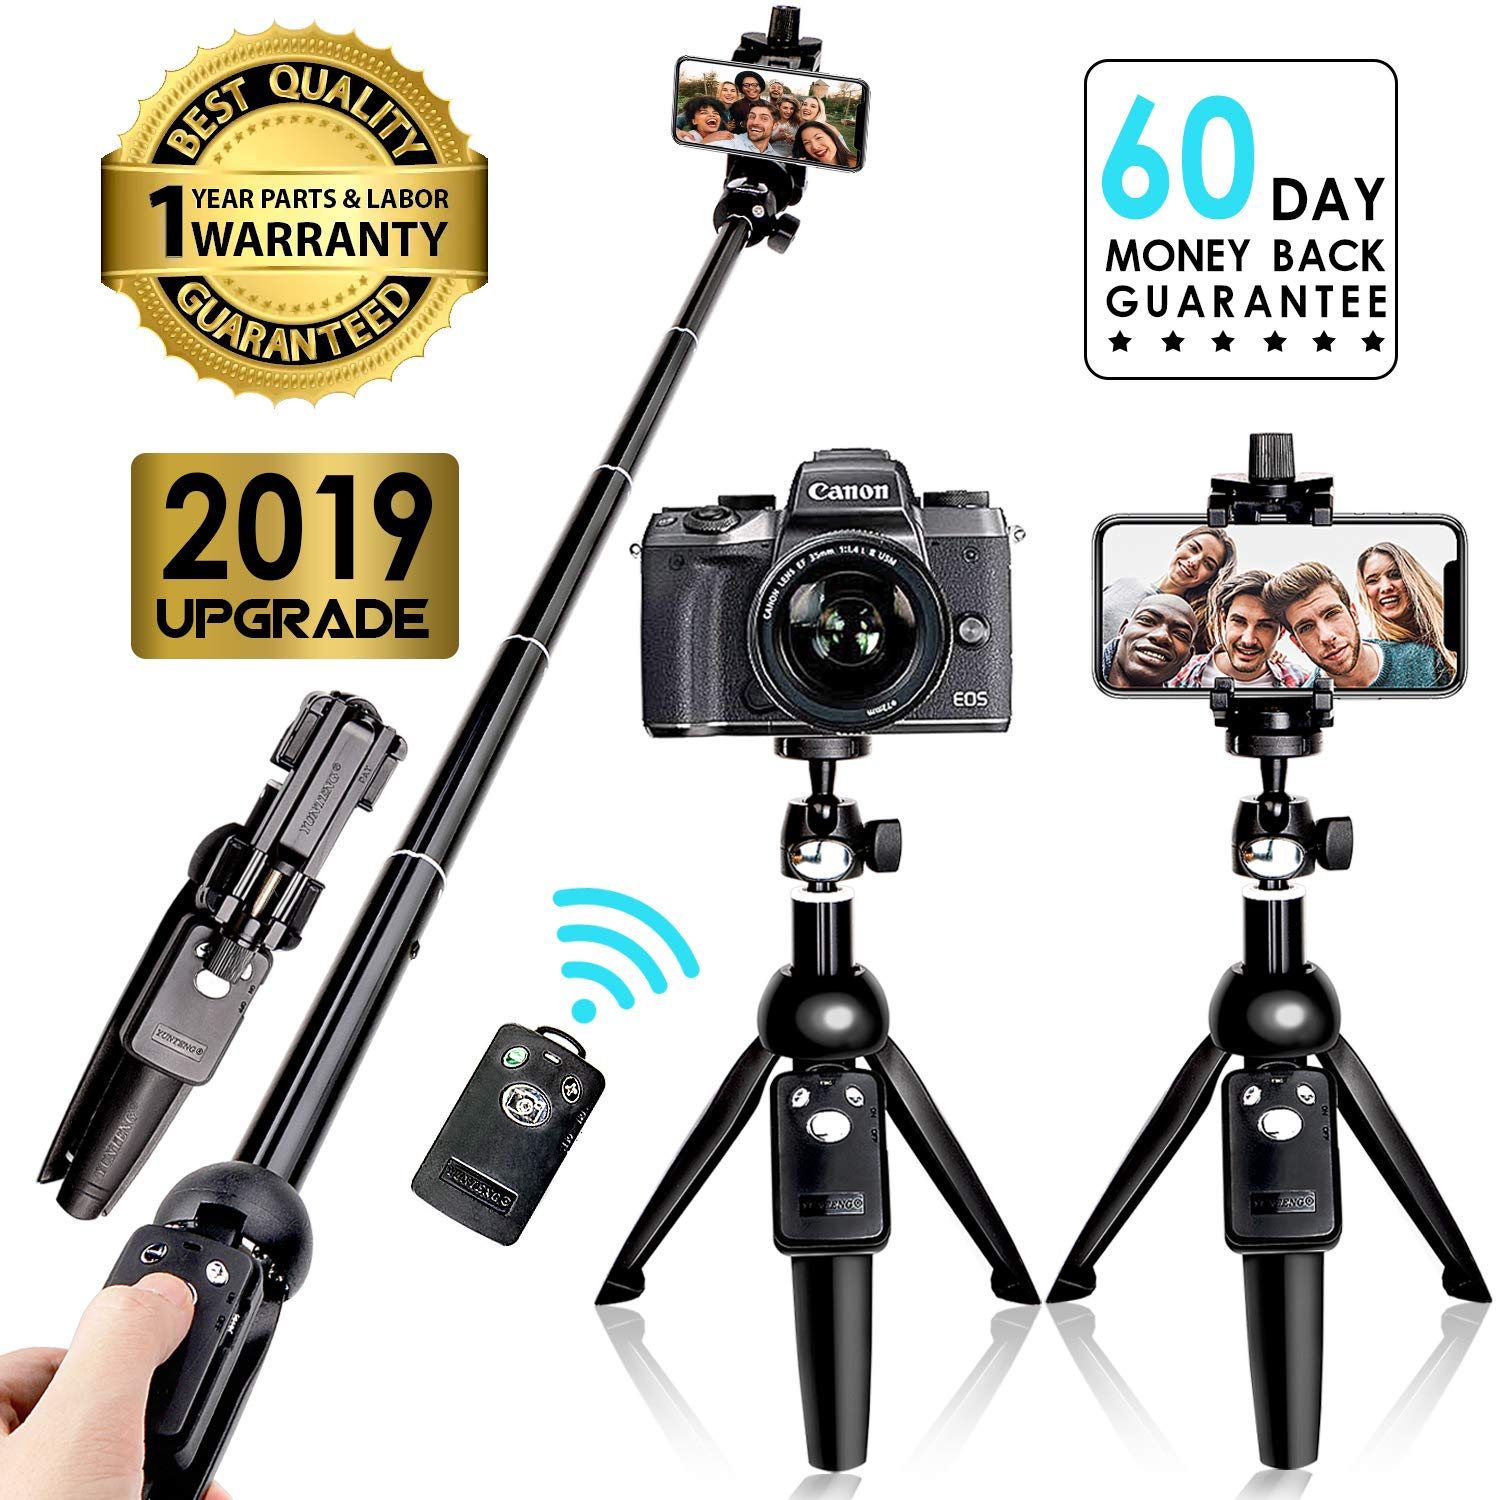 Selfie Stick Tripod Bluetooth, 40 Inch Extendable Flexible Selfie Stick Tripod with Detachable Wireless Remote, Compatible with iPhone Xs Max/XS/XR/iPhone X/iPhone 8 Plus/iPhone 7/iPhone 6 Plus/Galaxy by Yunteng